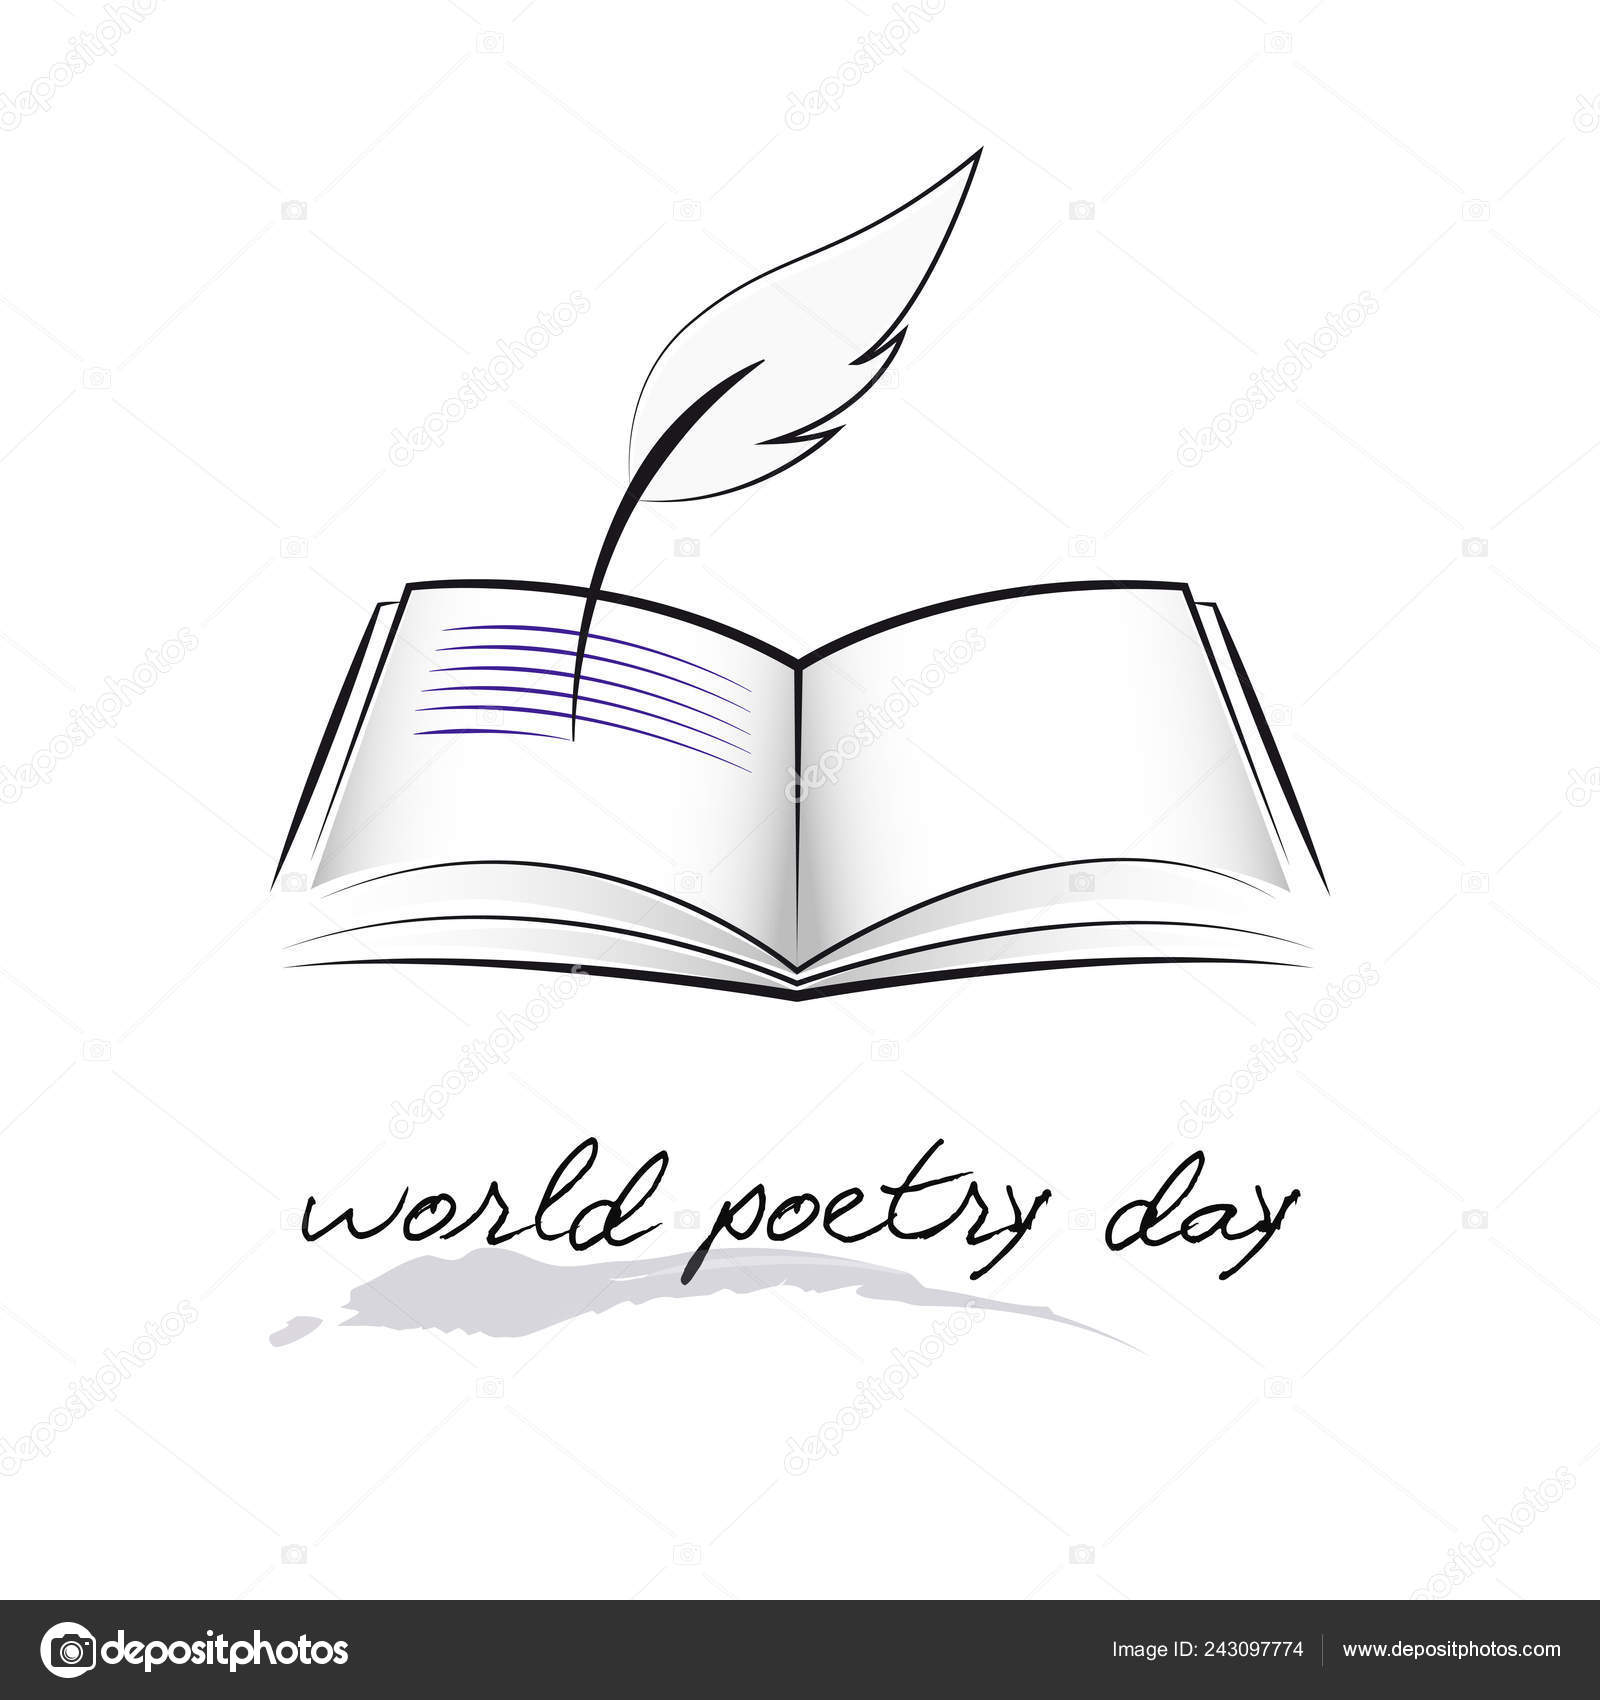 World poetry day sketch of a fountain pen and book stock vector